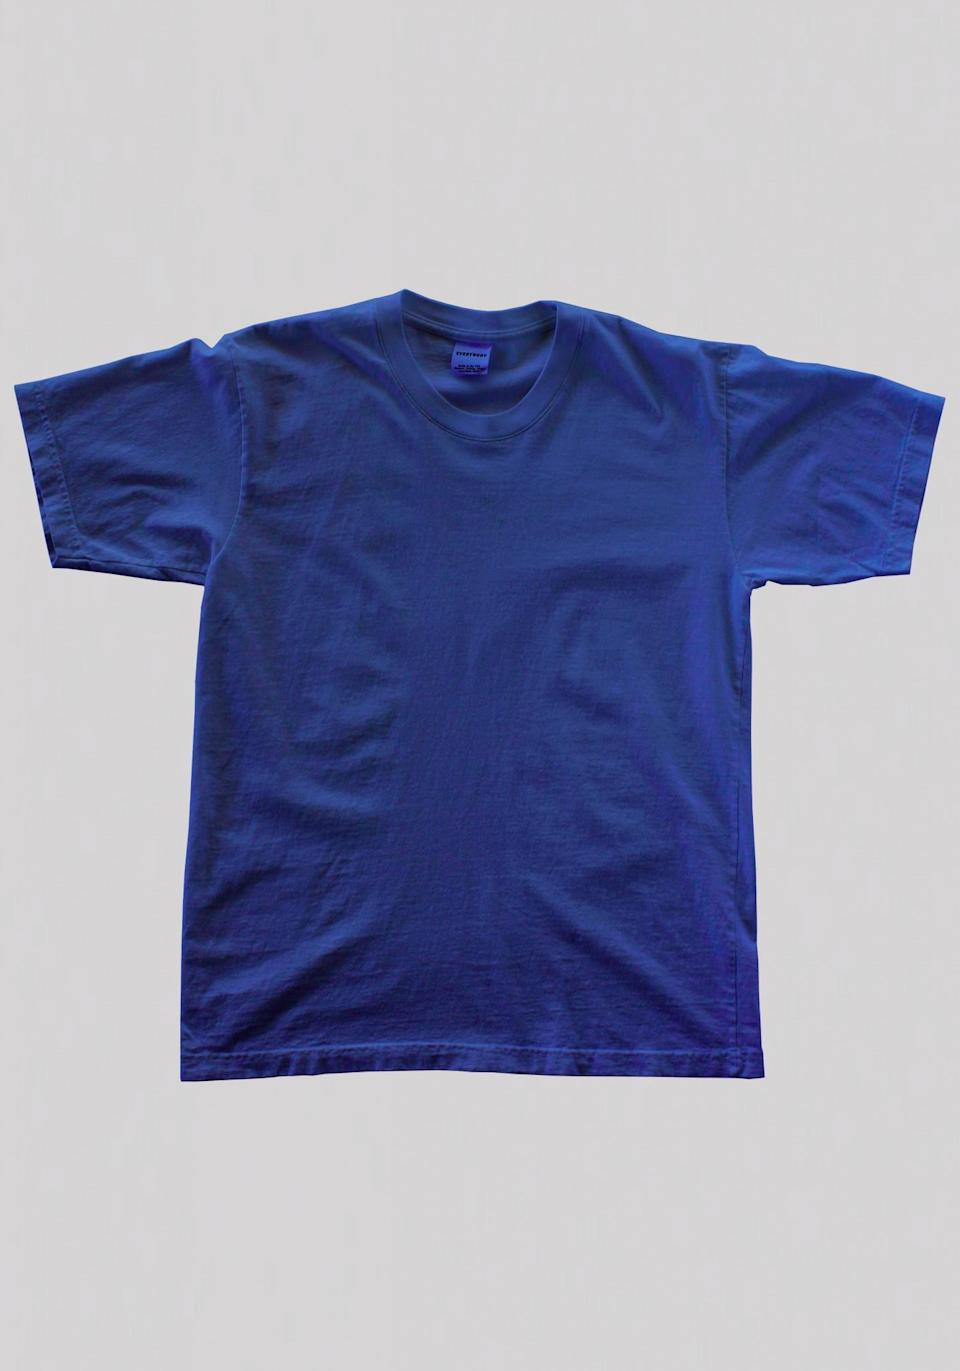 """<p>This classic tee made from 100% recycled cotton, $25. Available on <a href=""""https://everybody.world/product/classic-trash-tee/"""" rel=""""nofollow noopener"""" target=""""_blank"""" data-ylk=""""slk:Everybody.world"""" class=""""link rapid-noclick-resp"""">Everybody.world</a> </p>"""